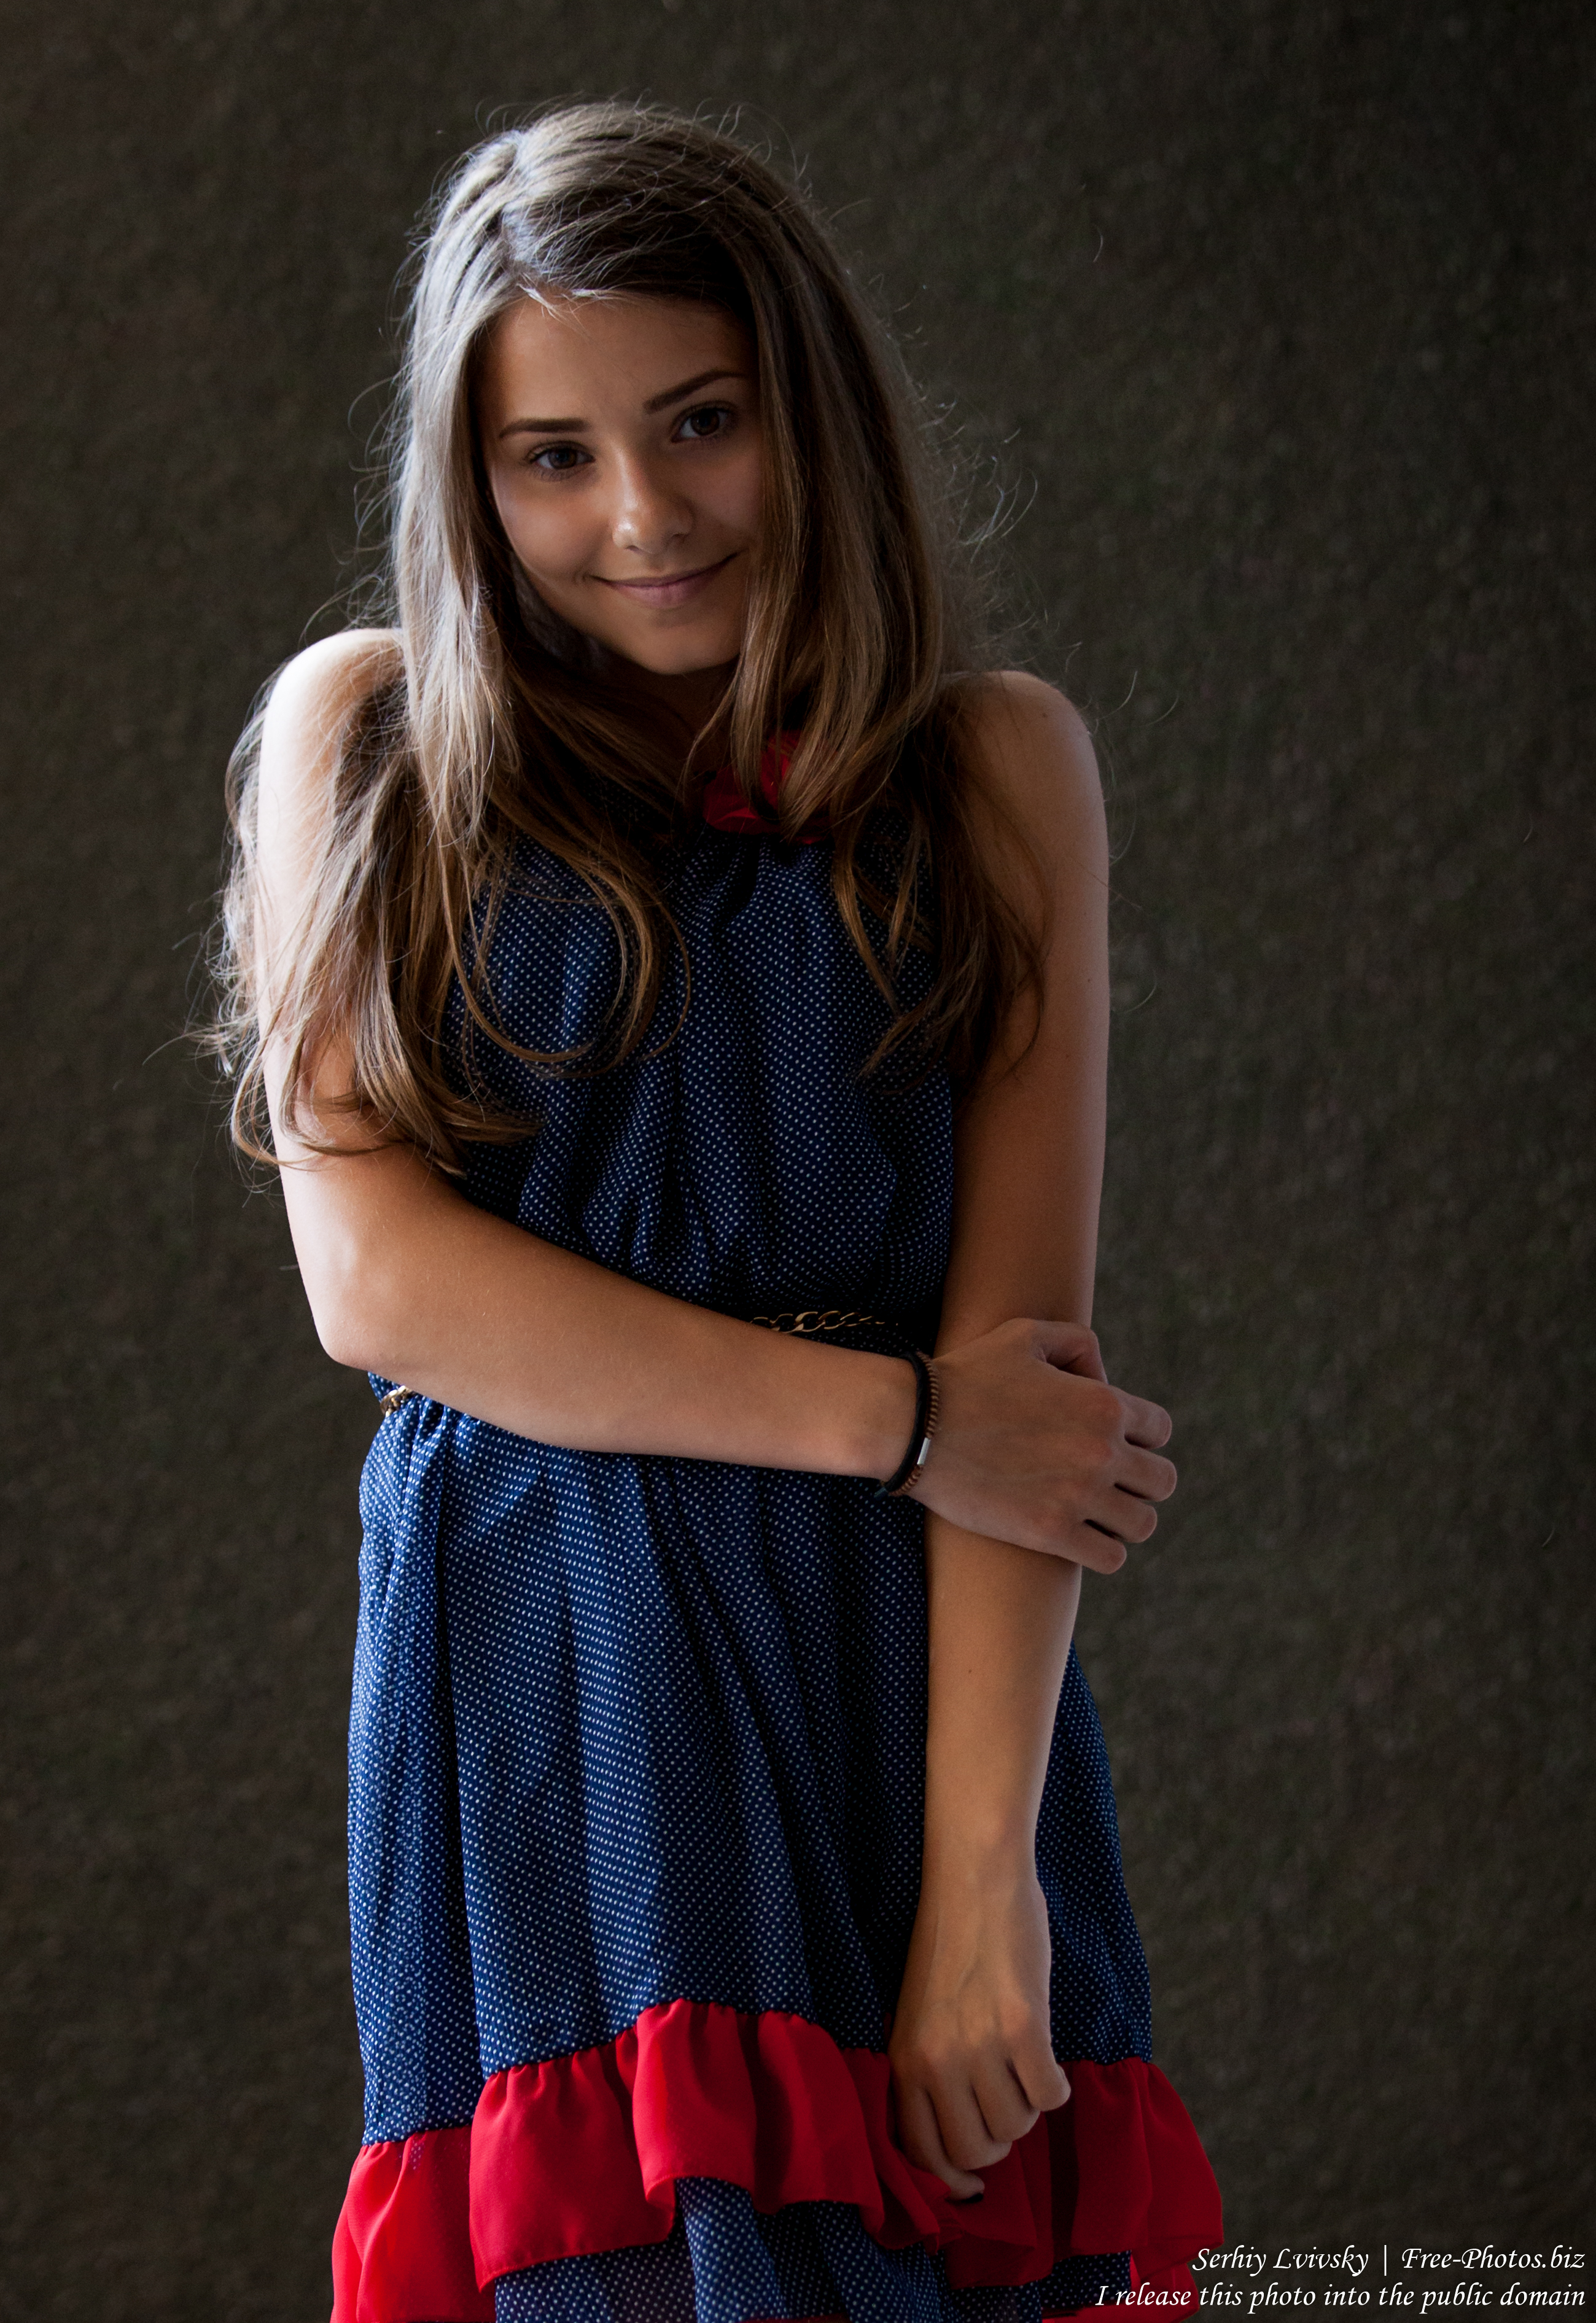 a 14-year-old brunette girl photographed in July 2015, picture 4